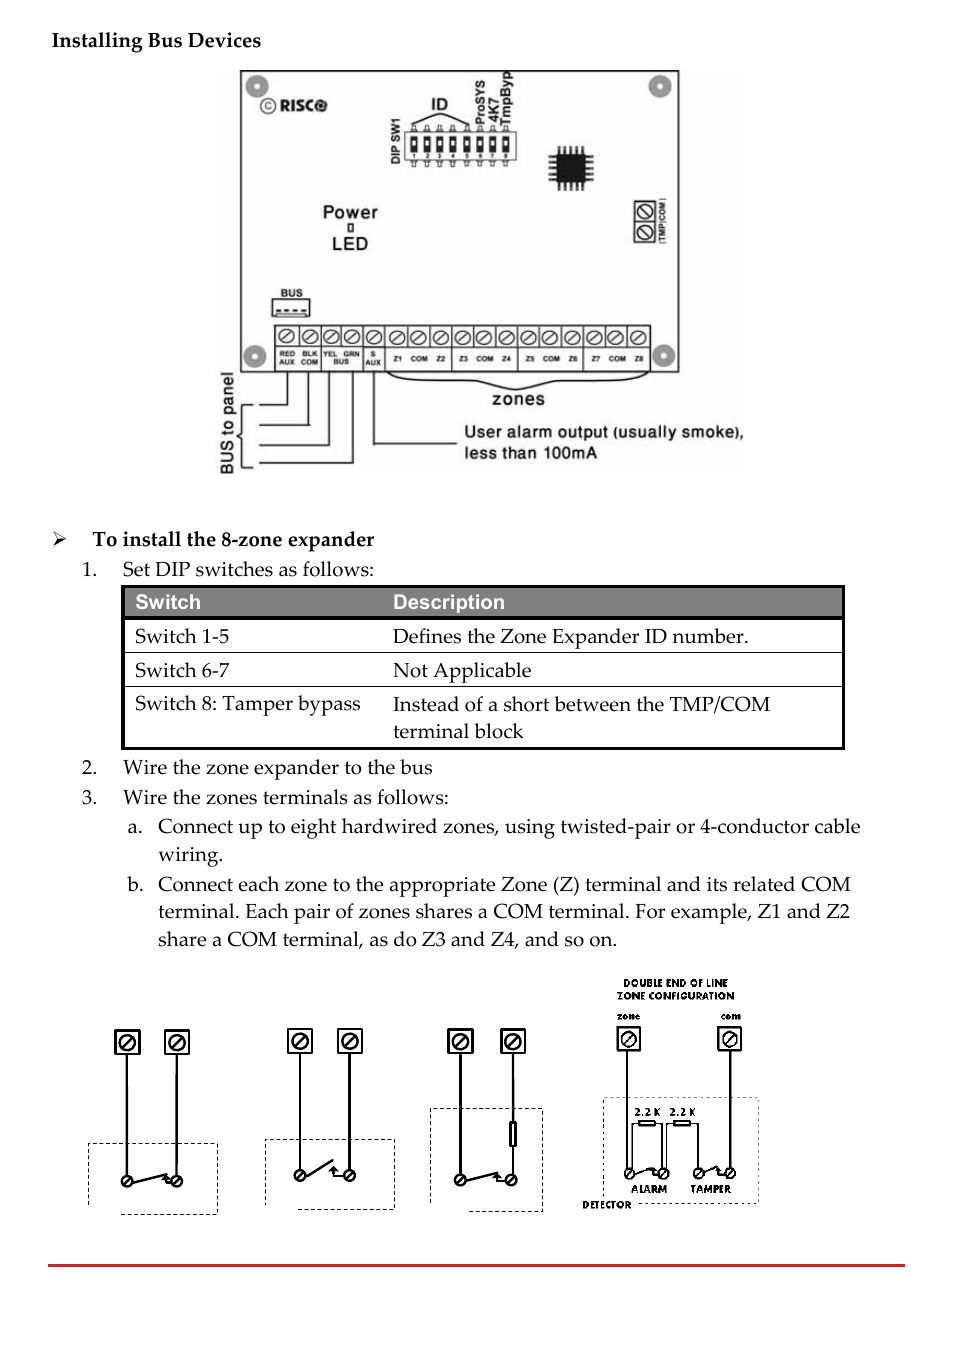 Installing Bus Devices Risco Group Lightsys 2 User Manual Page Twisted Pair Cable Schematic 42 256